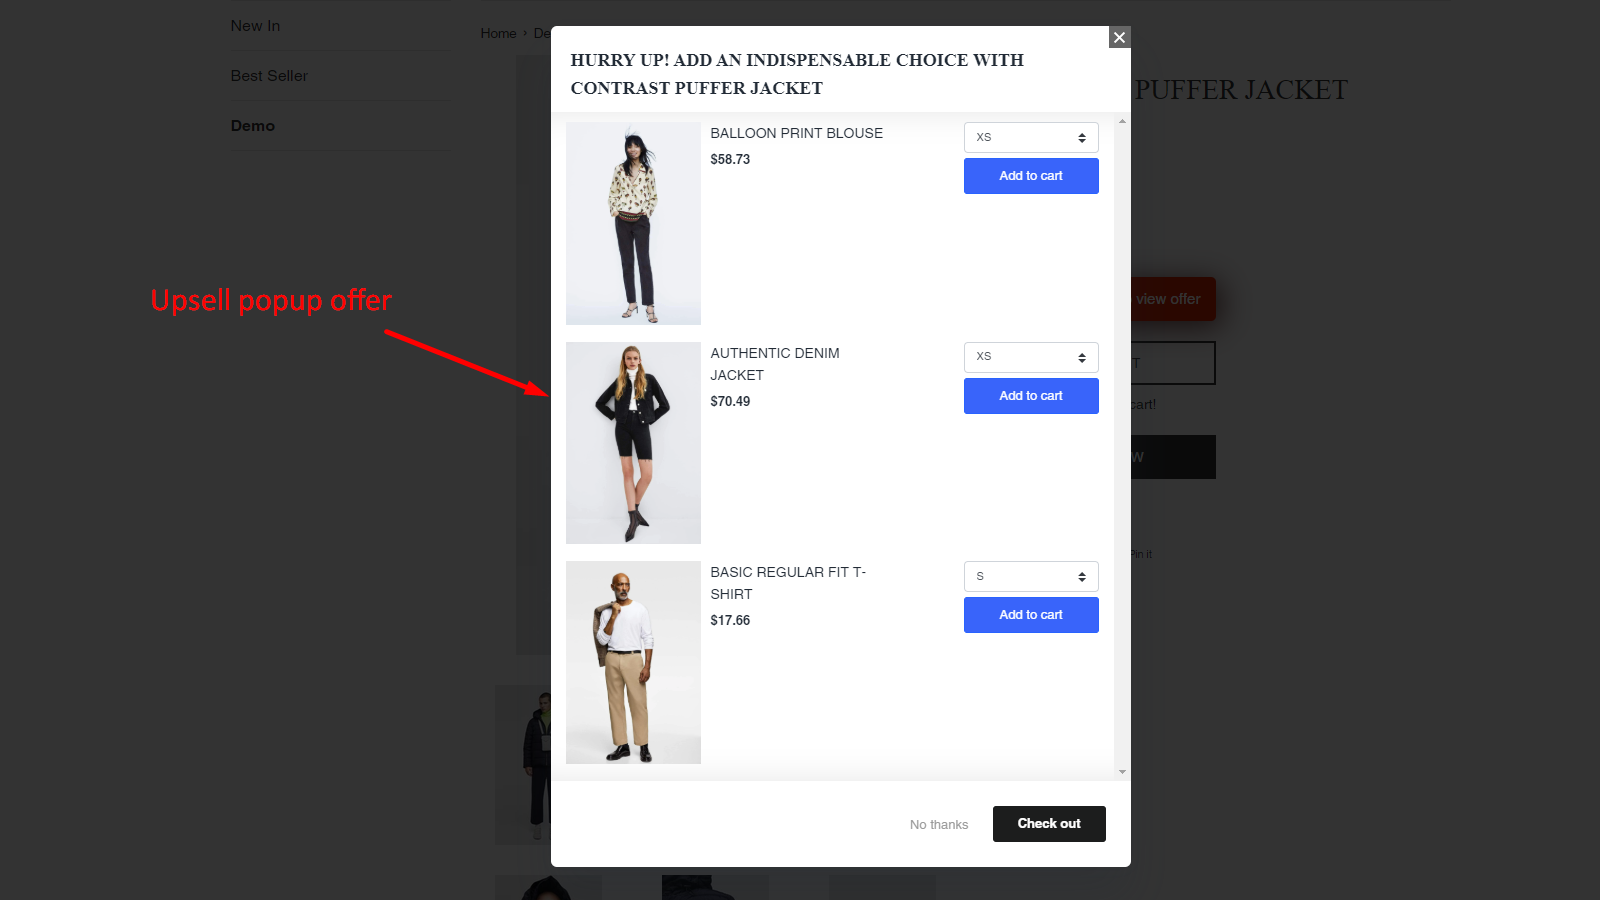 upsell popup offer